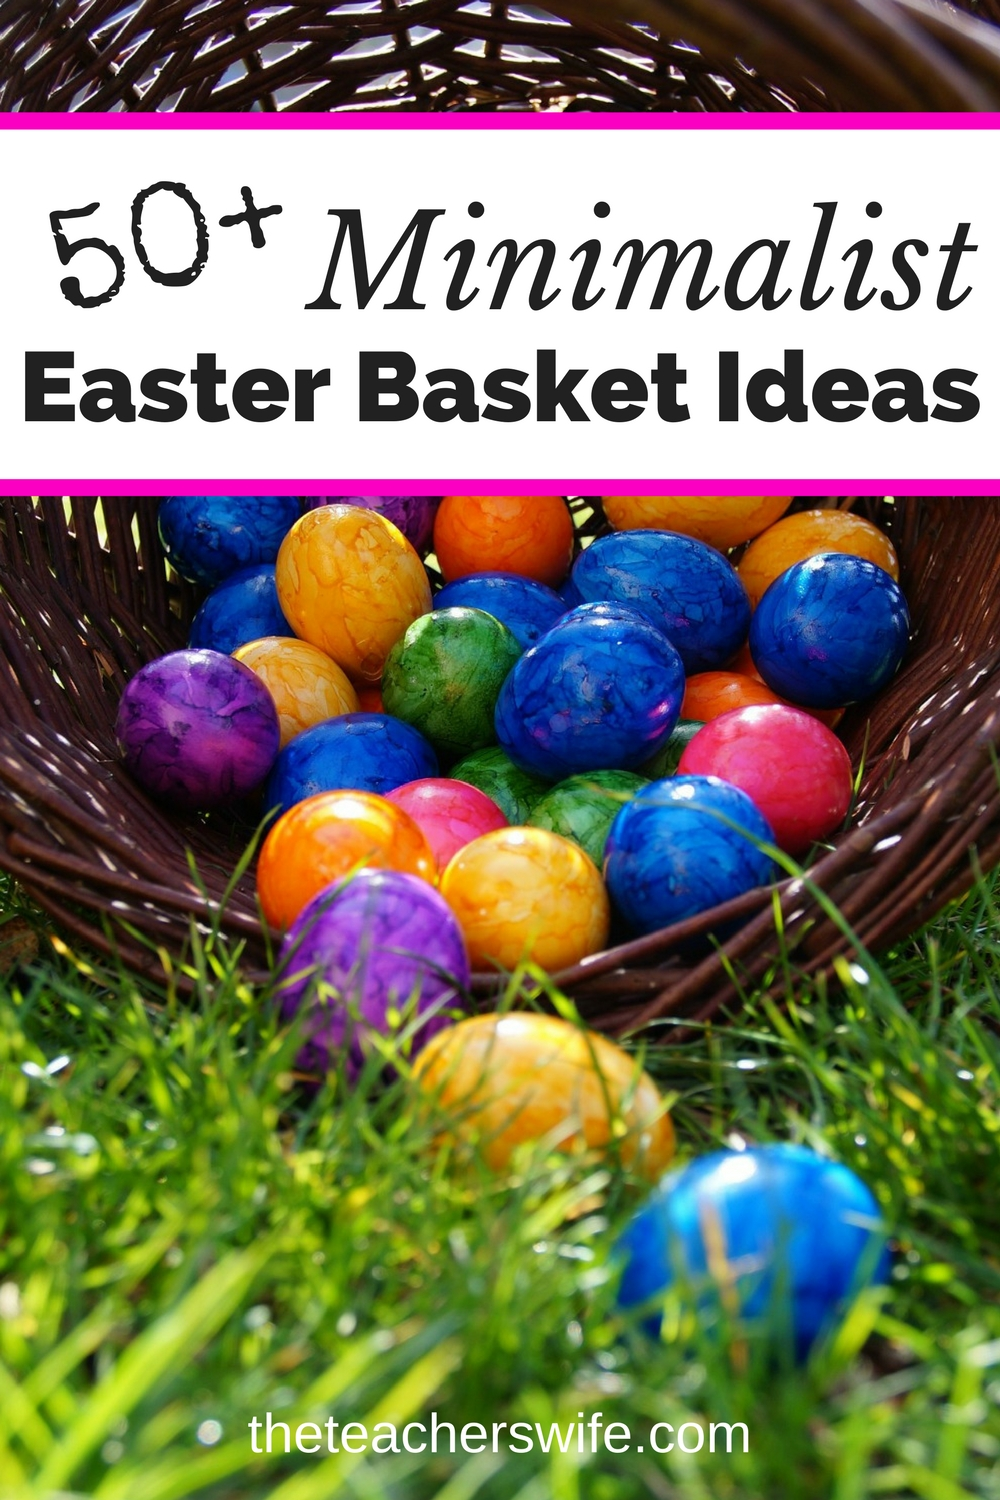 Do you hate junk, but love Easter? These 50+ minimalist Easter basket ideas will help you create a fun yet practical Easter basket!